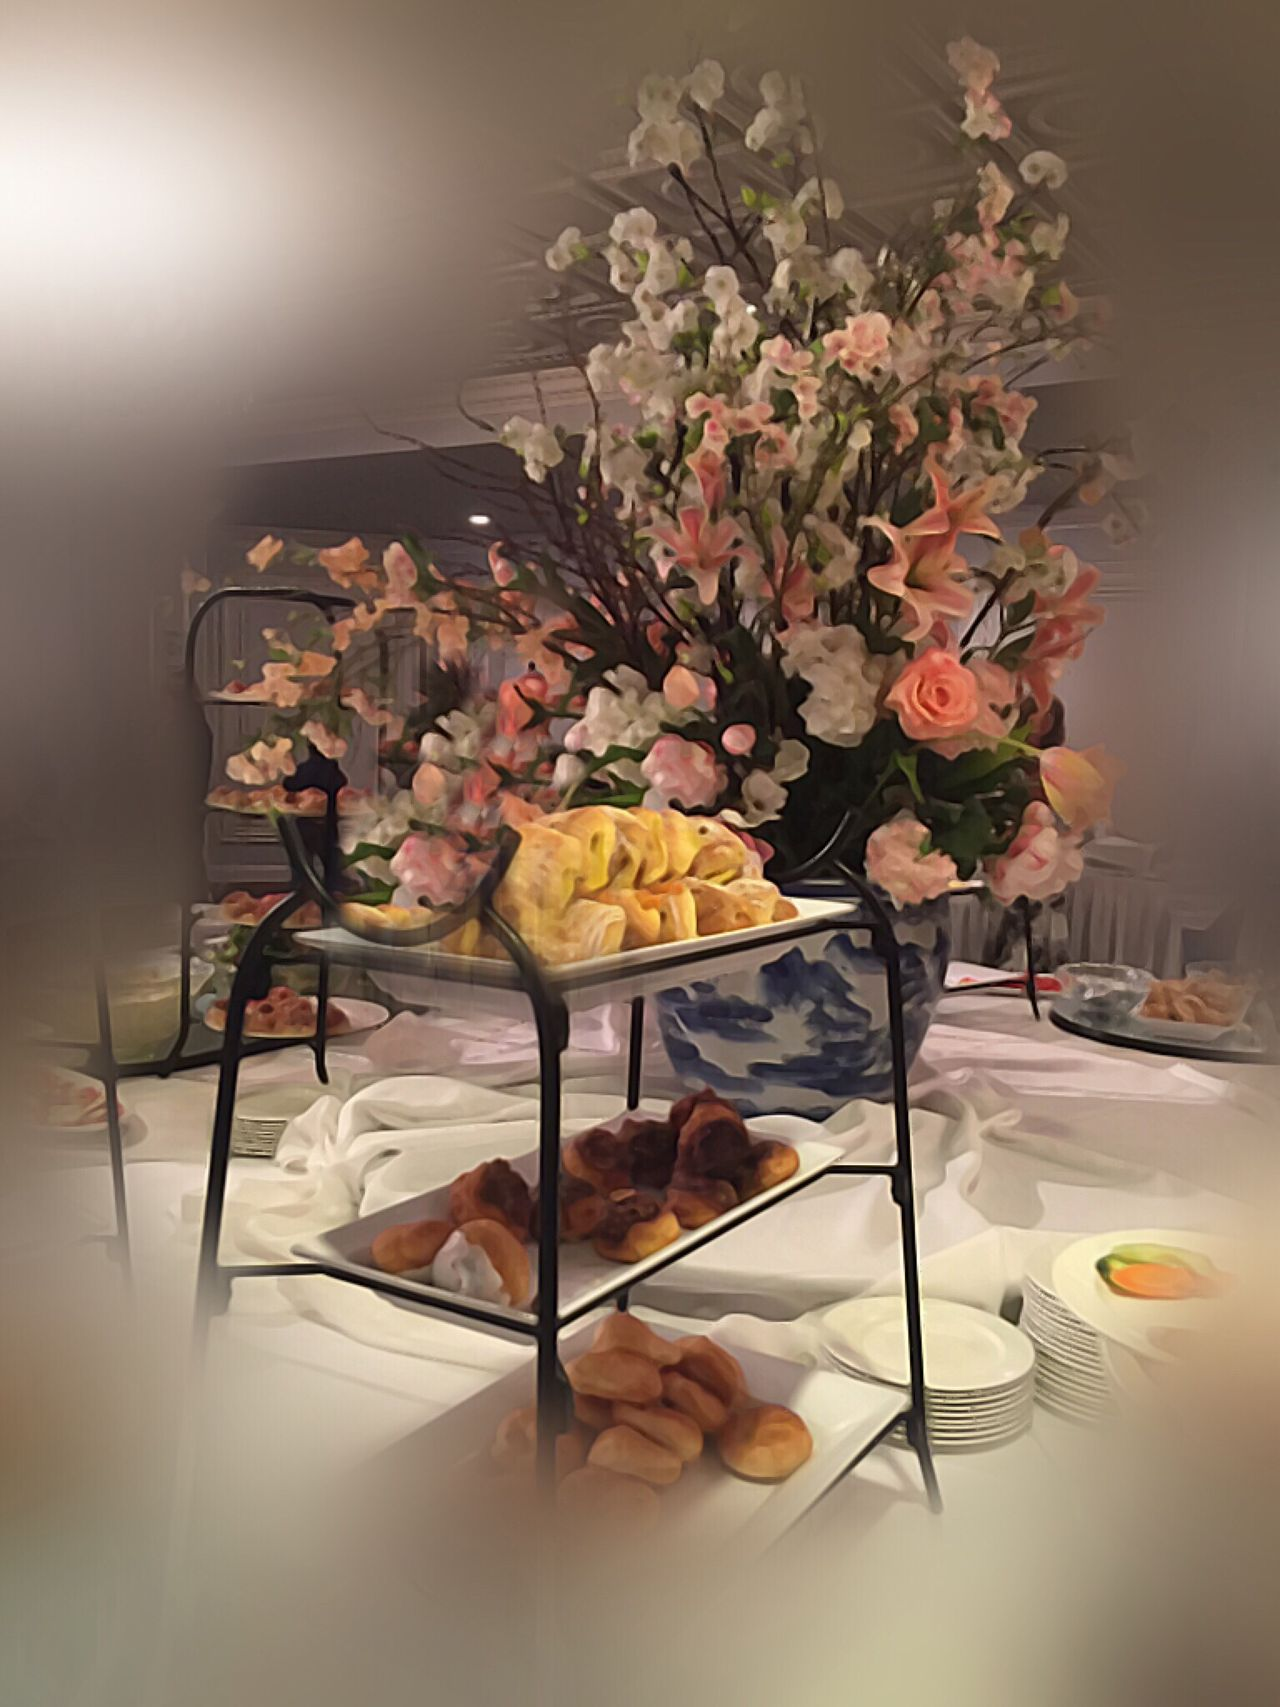 Flower Freshness Indoors  Variation Fragility Bouquet Table Large Group Of Objects No People Food Flower Head Pastry Paradise My Own Style Of Beauty Flower Collection